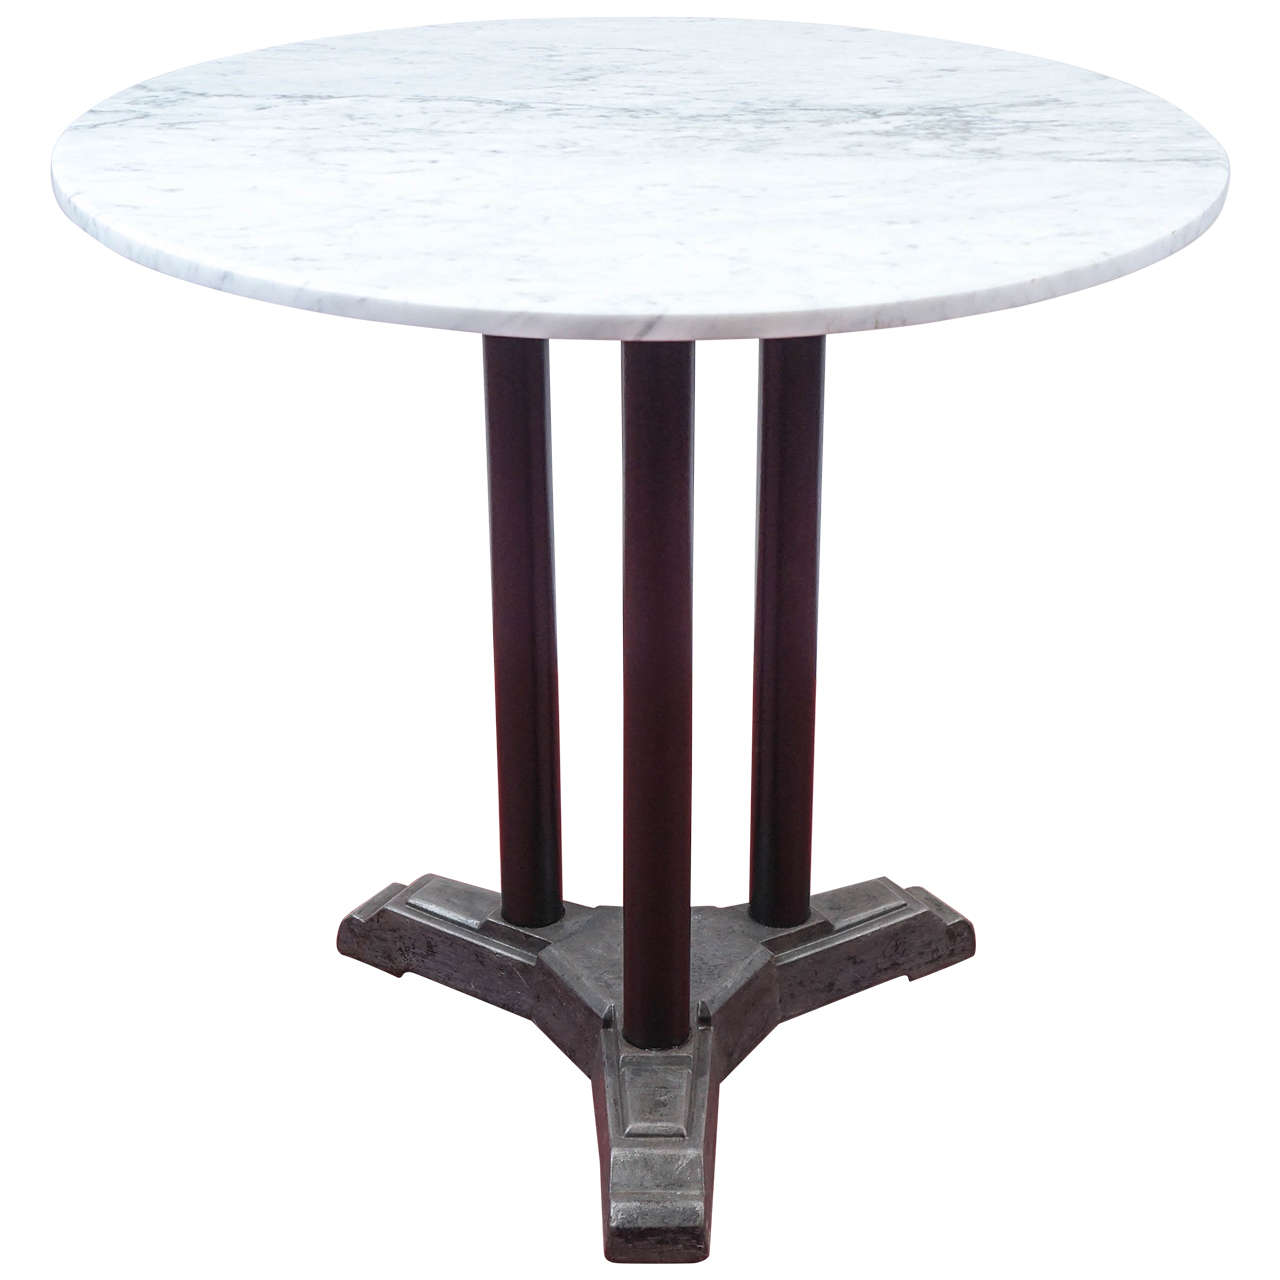 French Deco Marbletop Bistro Cafe Table At 1stdibs. Contemporary Entry Doors. Open Shelves Kitchen. House Of Granite. Blanco Sinks. Hanging Curtains From Ceiling. Interior Windows. Tempurpedic Mattress Cover Queen. Tall End Table With Storage